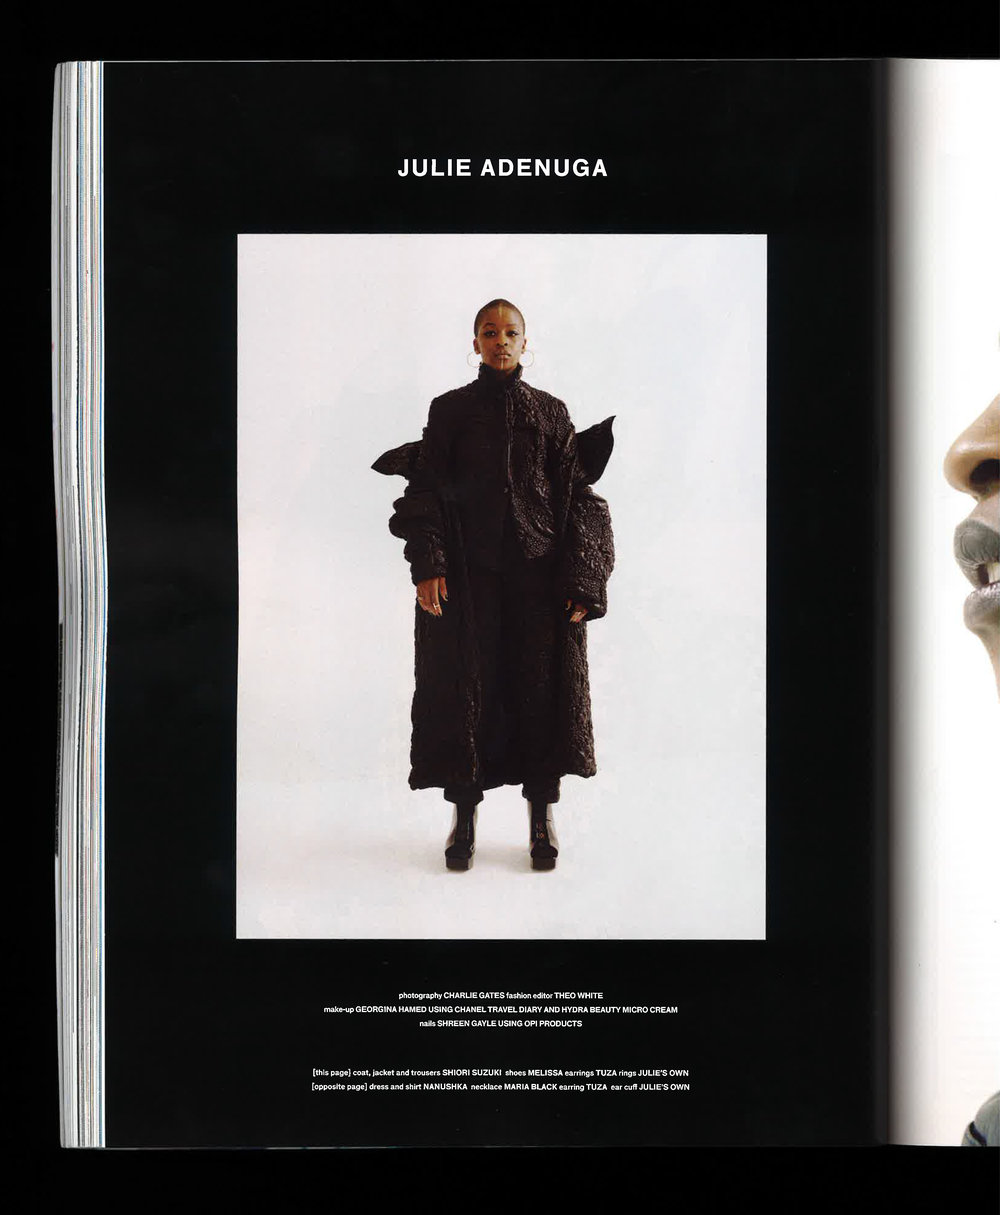 FeatureD  Julie Adenuga interview, 'MAD WORLD' (Autumn/Winter 2017)  H  UNGER MAGAZINE    Credits:   worn by   JULIE ADENUGA   photography   CHARLIE GATES   fashion editor   THEO WHITE   makeup   GEORGINA HAMED   nails   SHREEN GAYLE